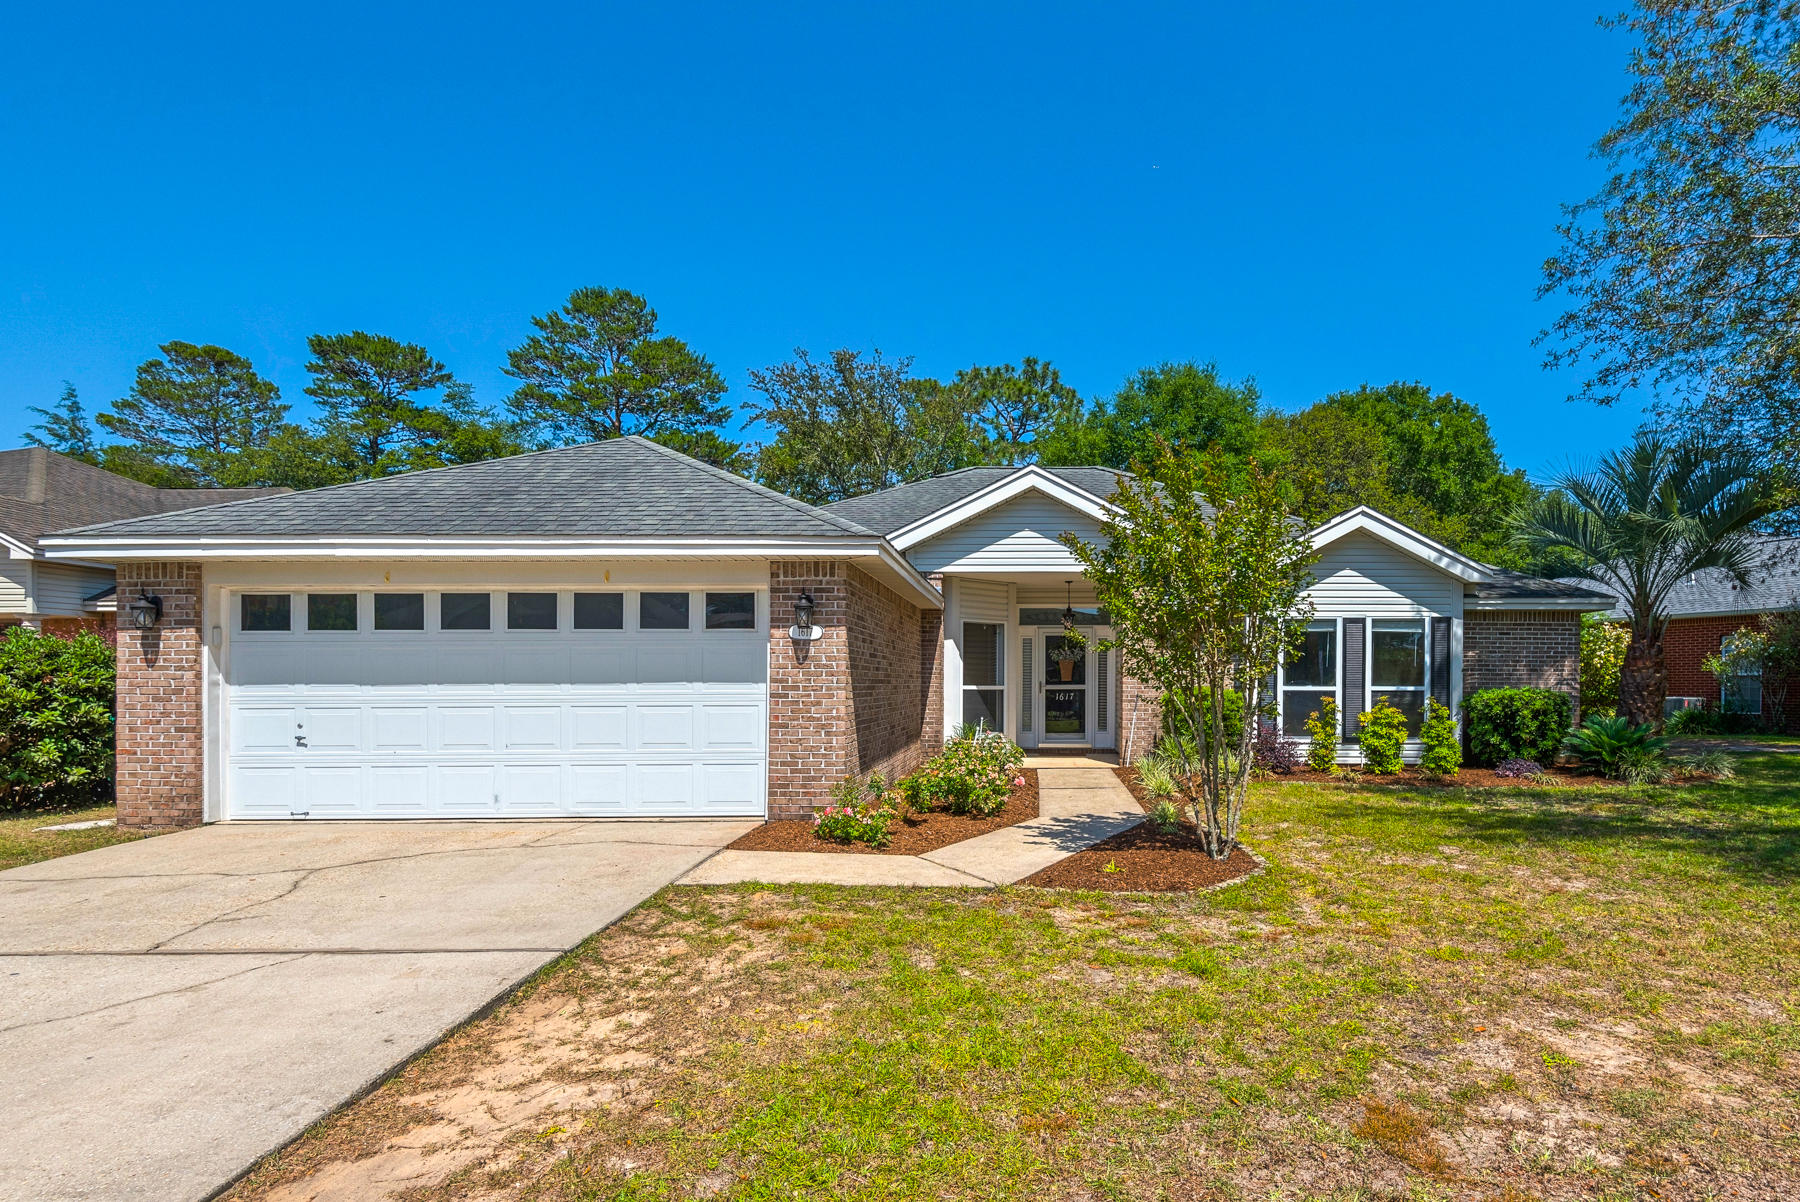 Bluewater Bay Beauty!! Step into this updated home and enjoy easy living! Located in Parkwood Estate